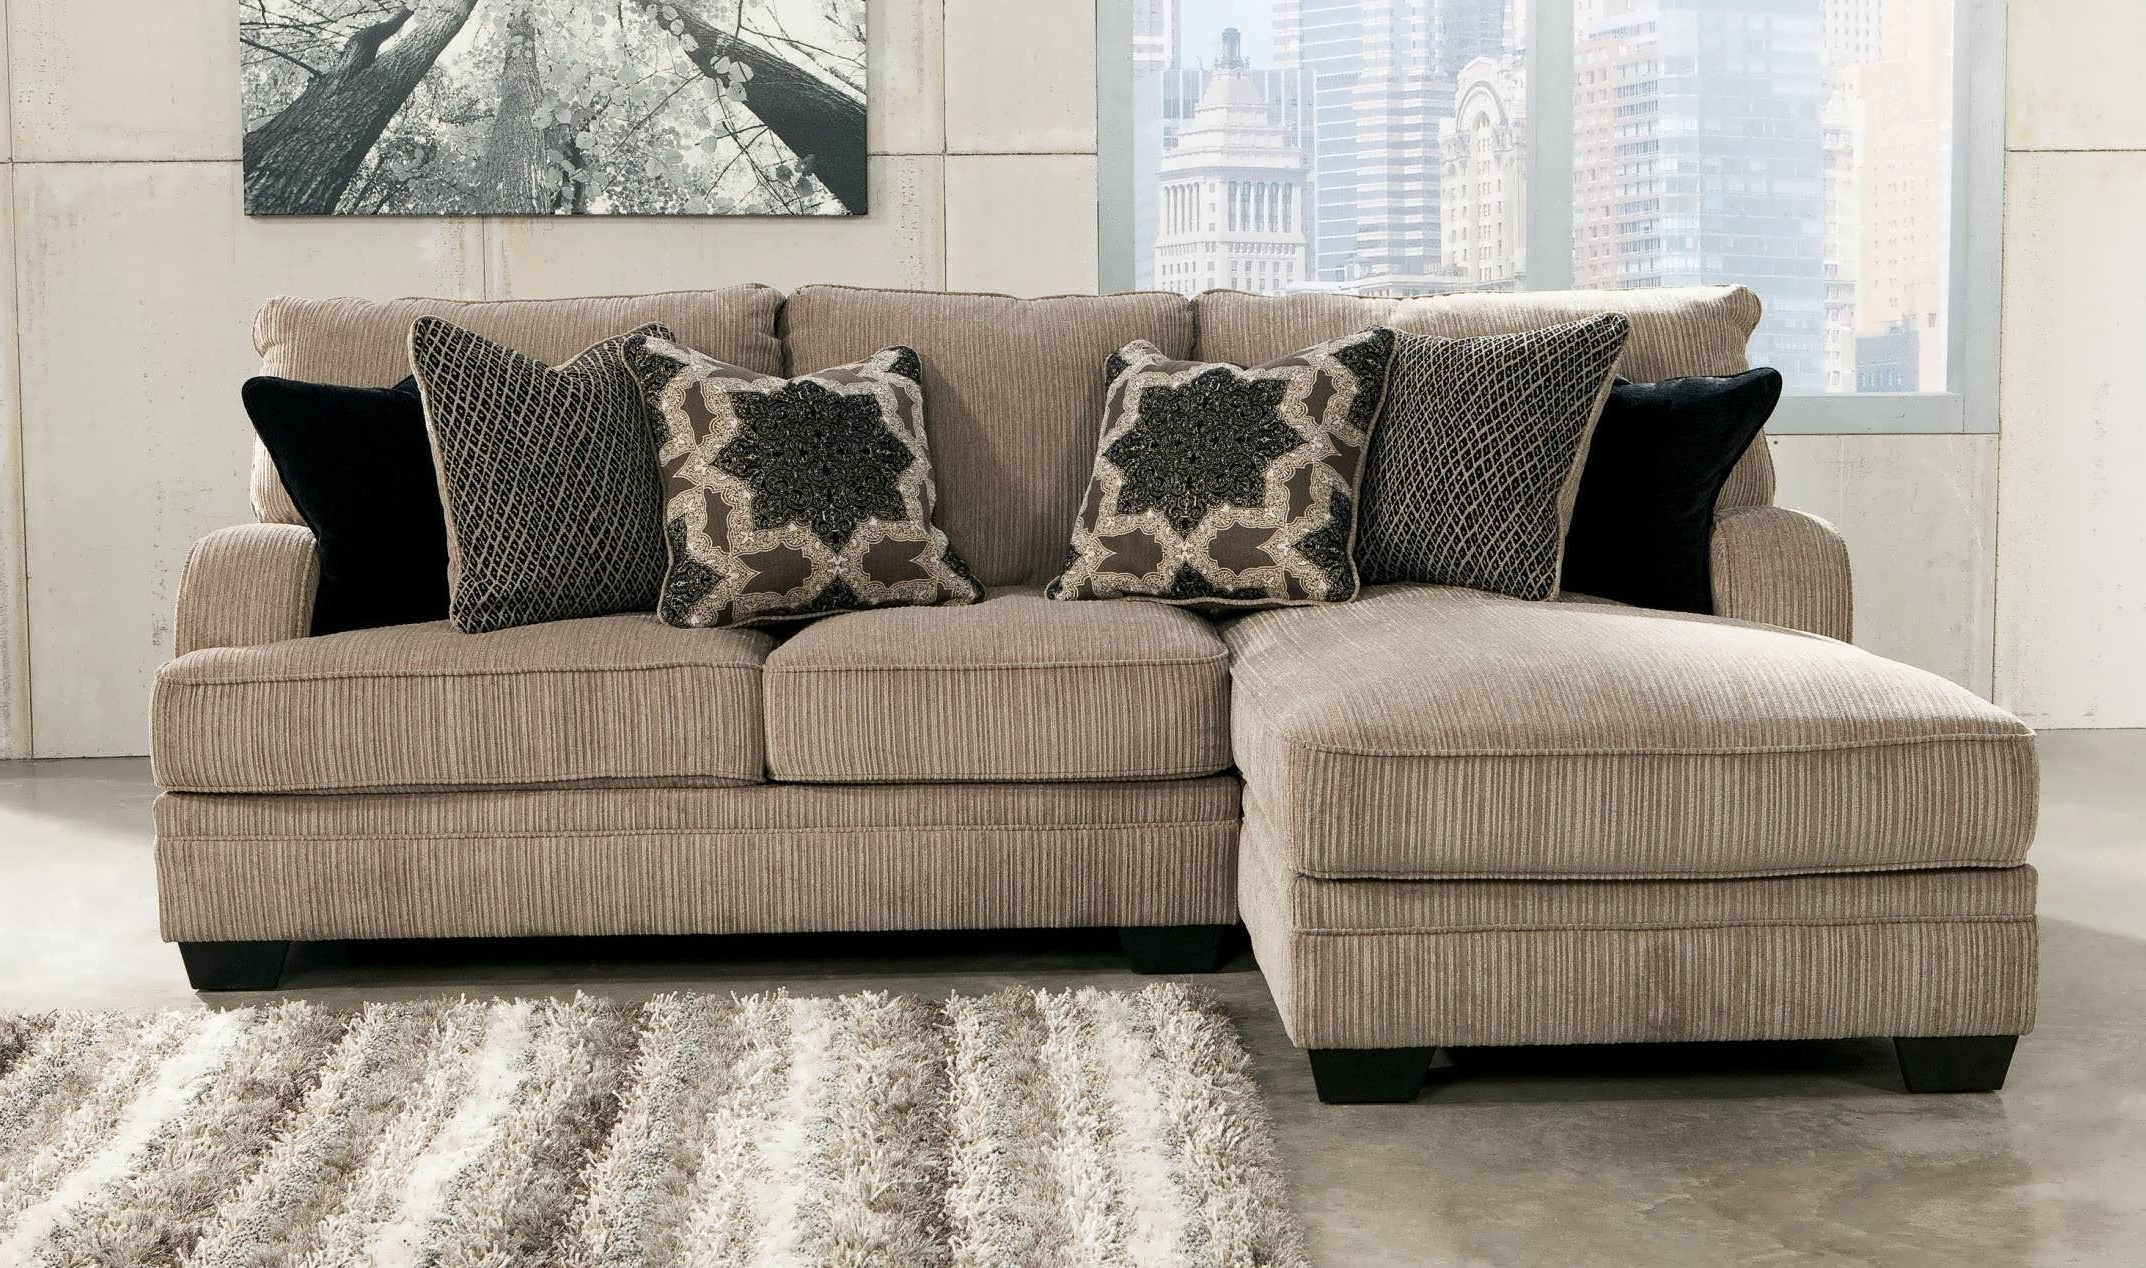 Most Popular Sofa : Small Sectional Sofa With Chaise 5 Piece Sectional Sofa With Regard To Small Sectional Sofas With Chaise (View 11 of 15)